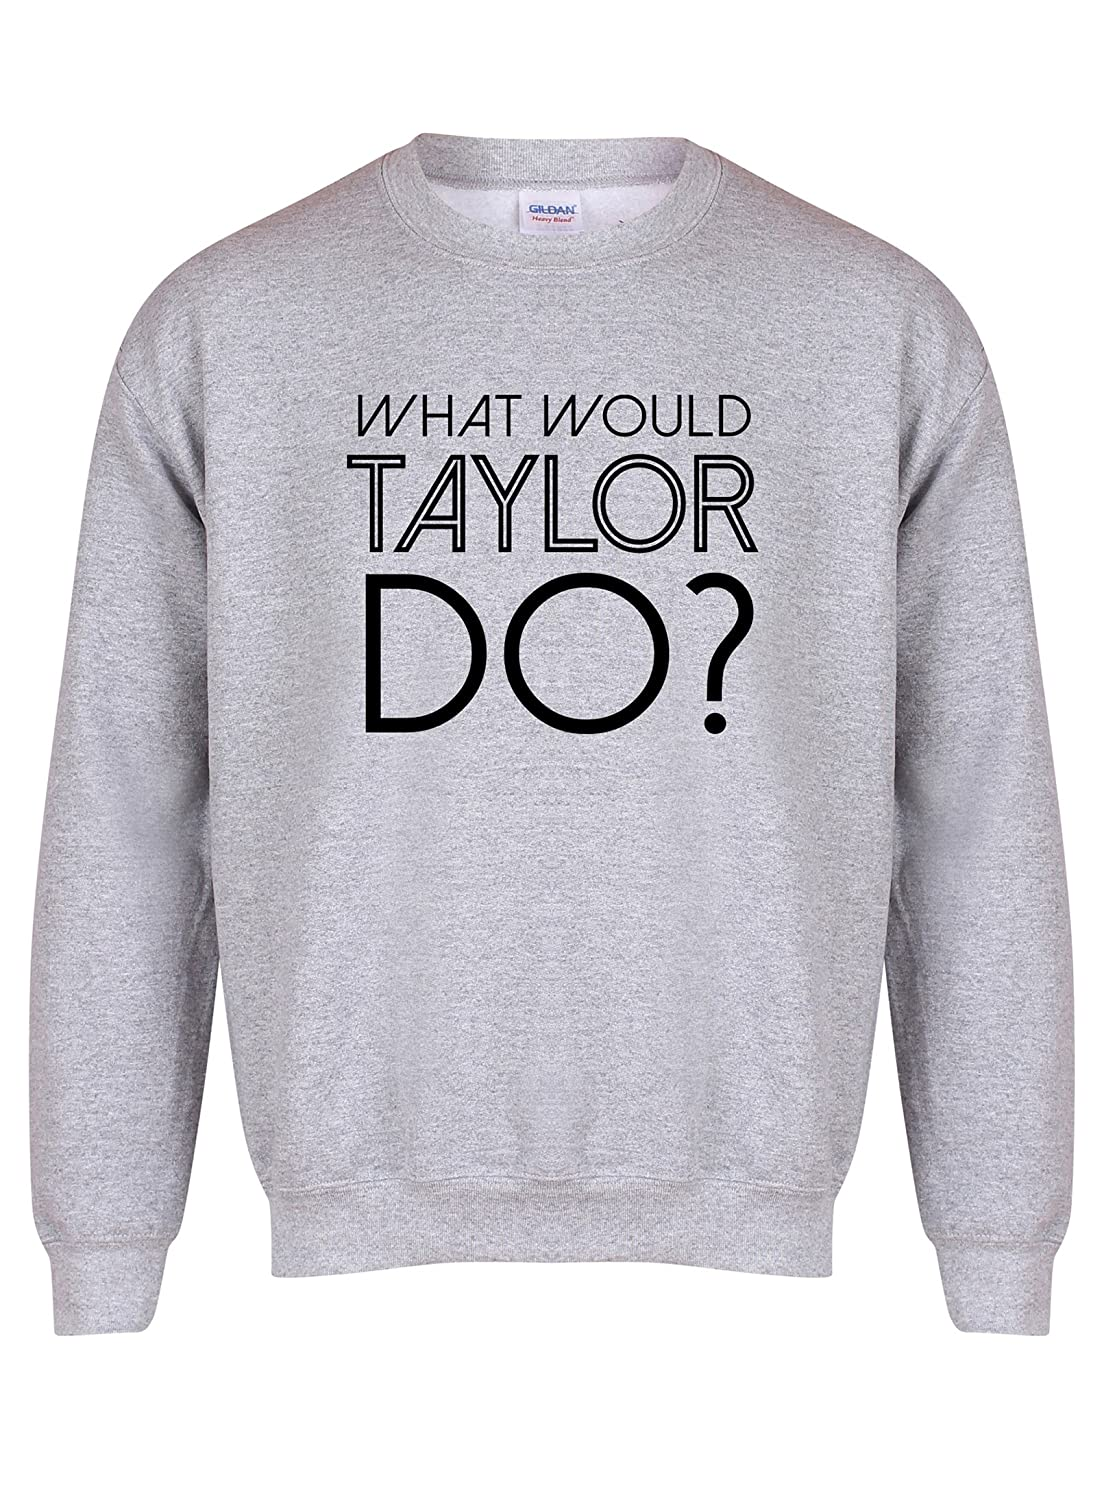 What Would Taylor Do? - Grey - Unisex Fit Sweater - Fun Slogan Jumper